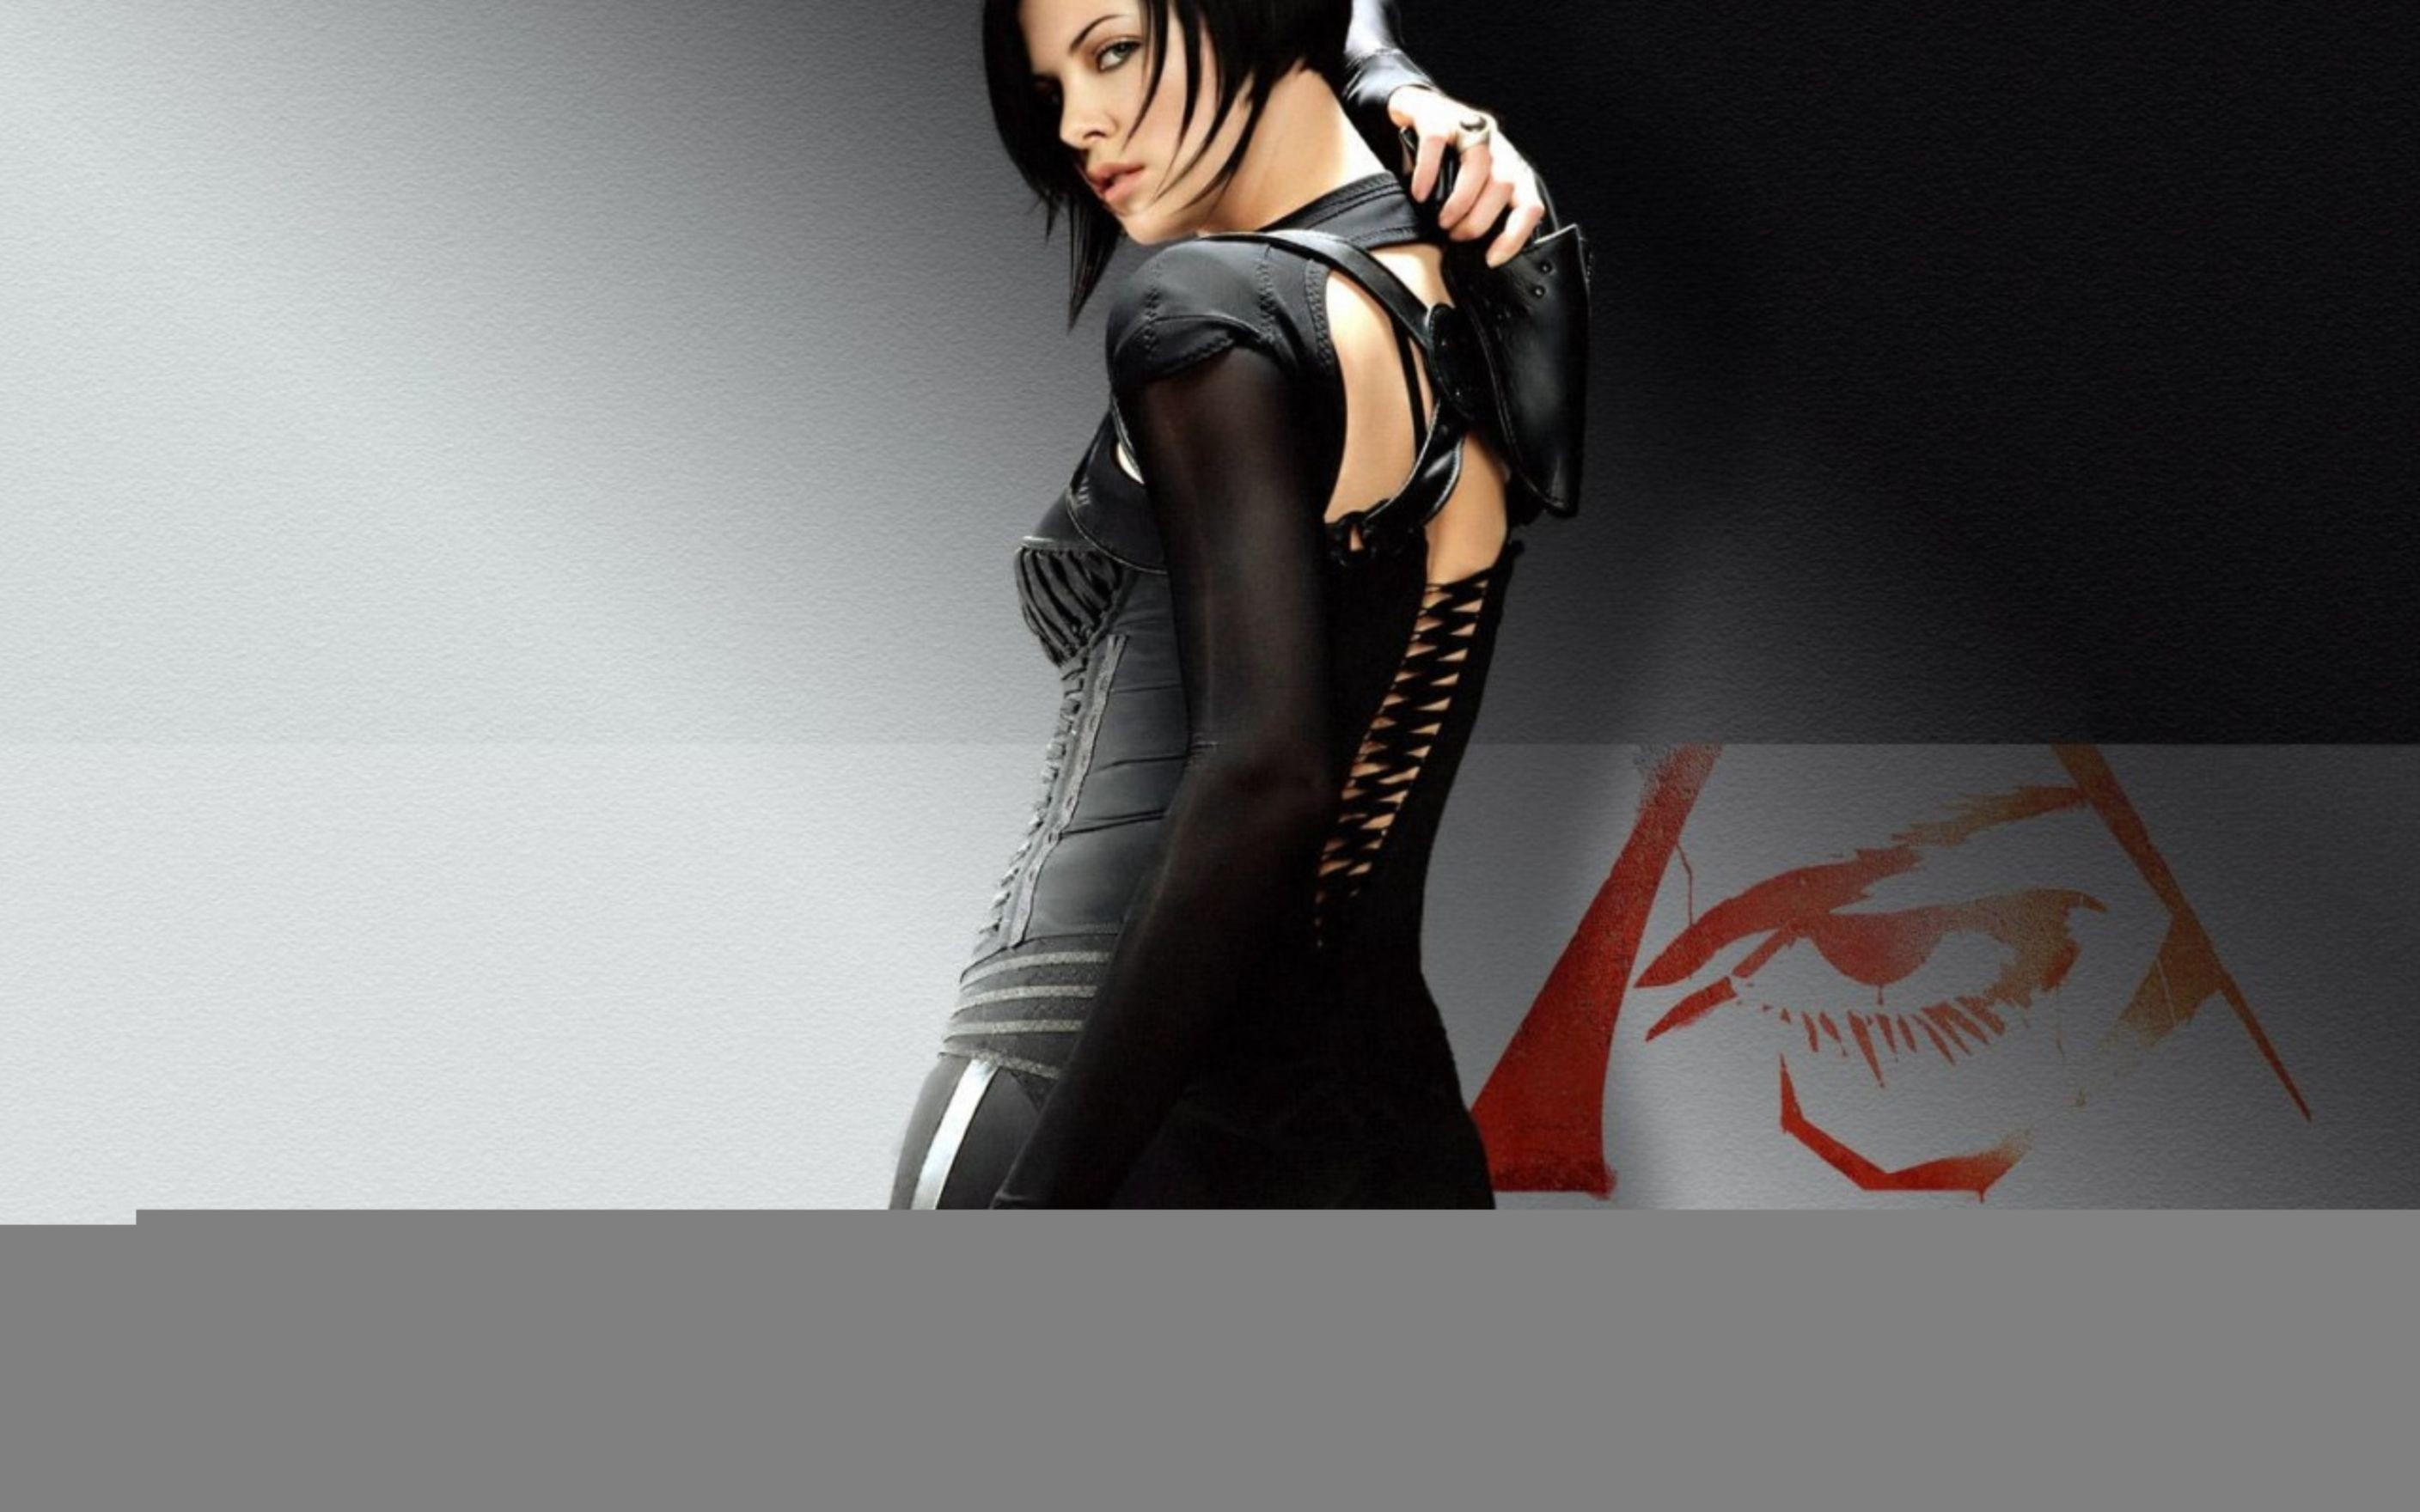 Res: 2816x1760, Charlize Theron in Aeonflux Wallpaper